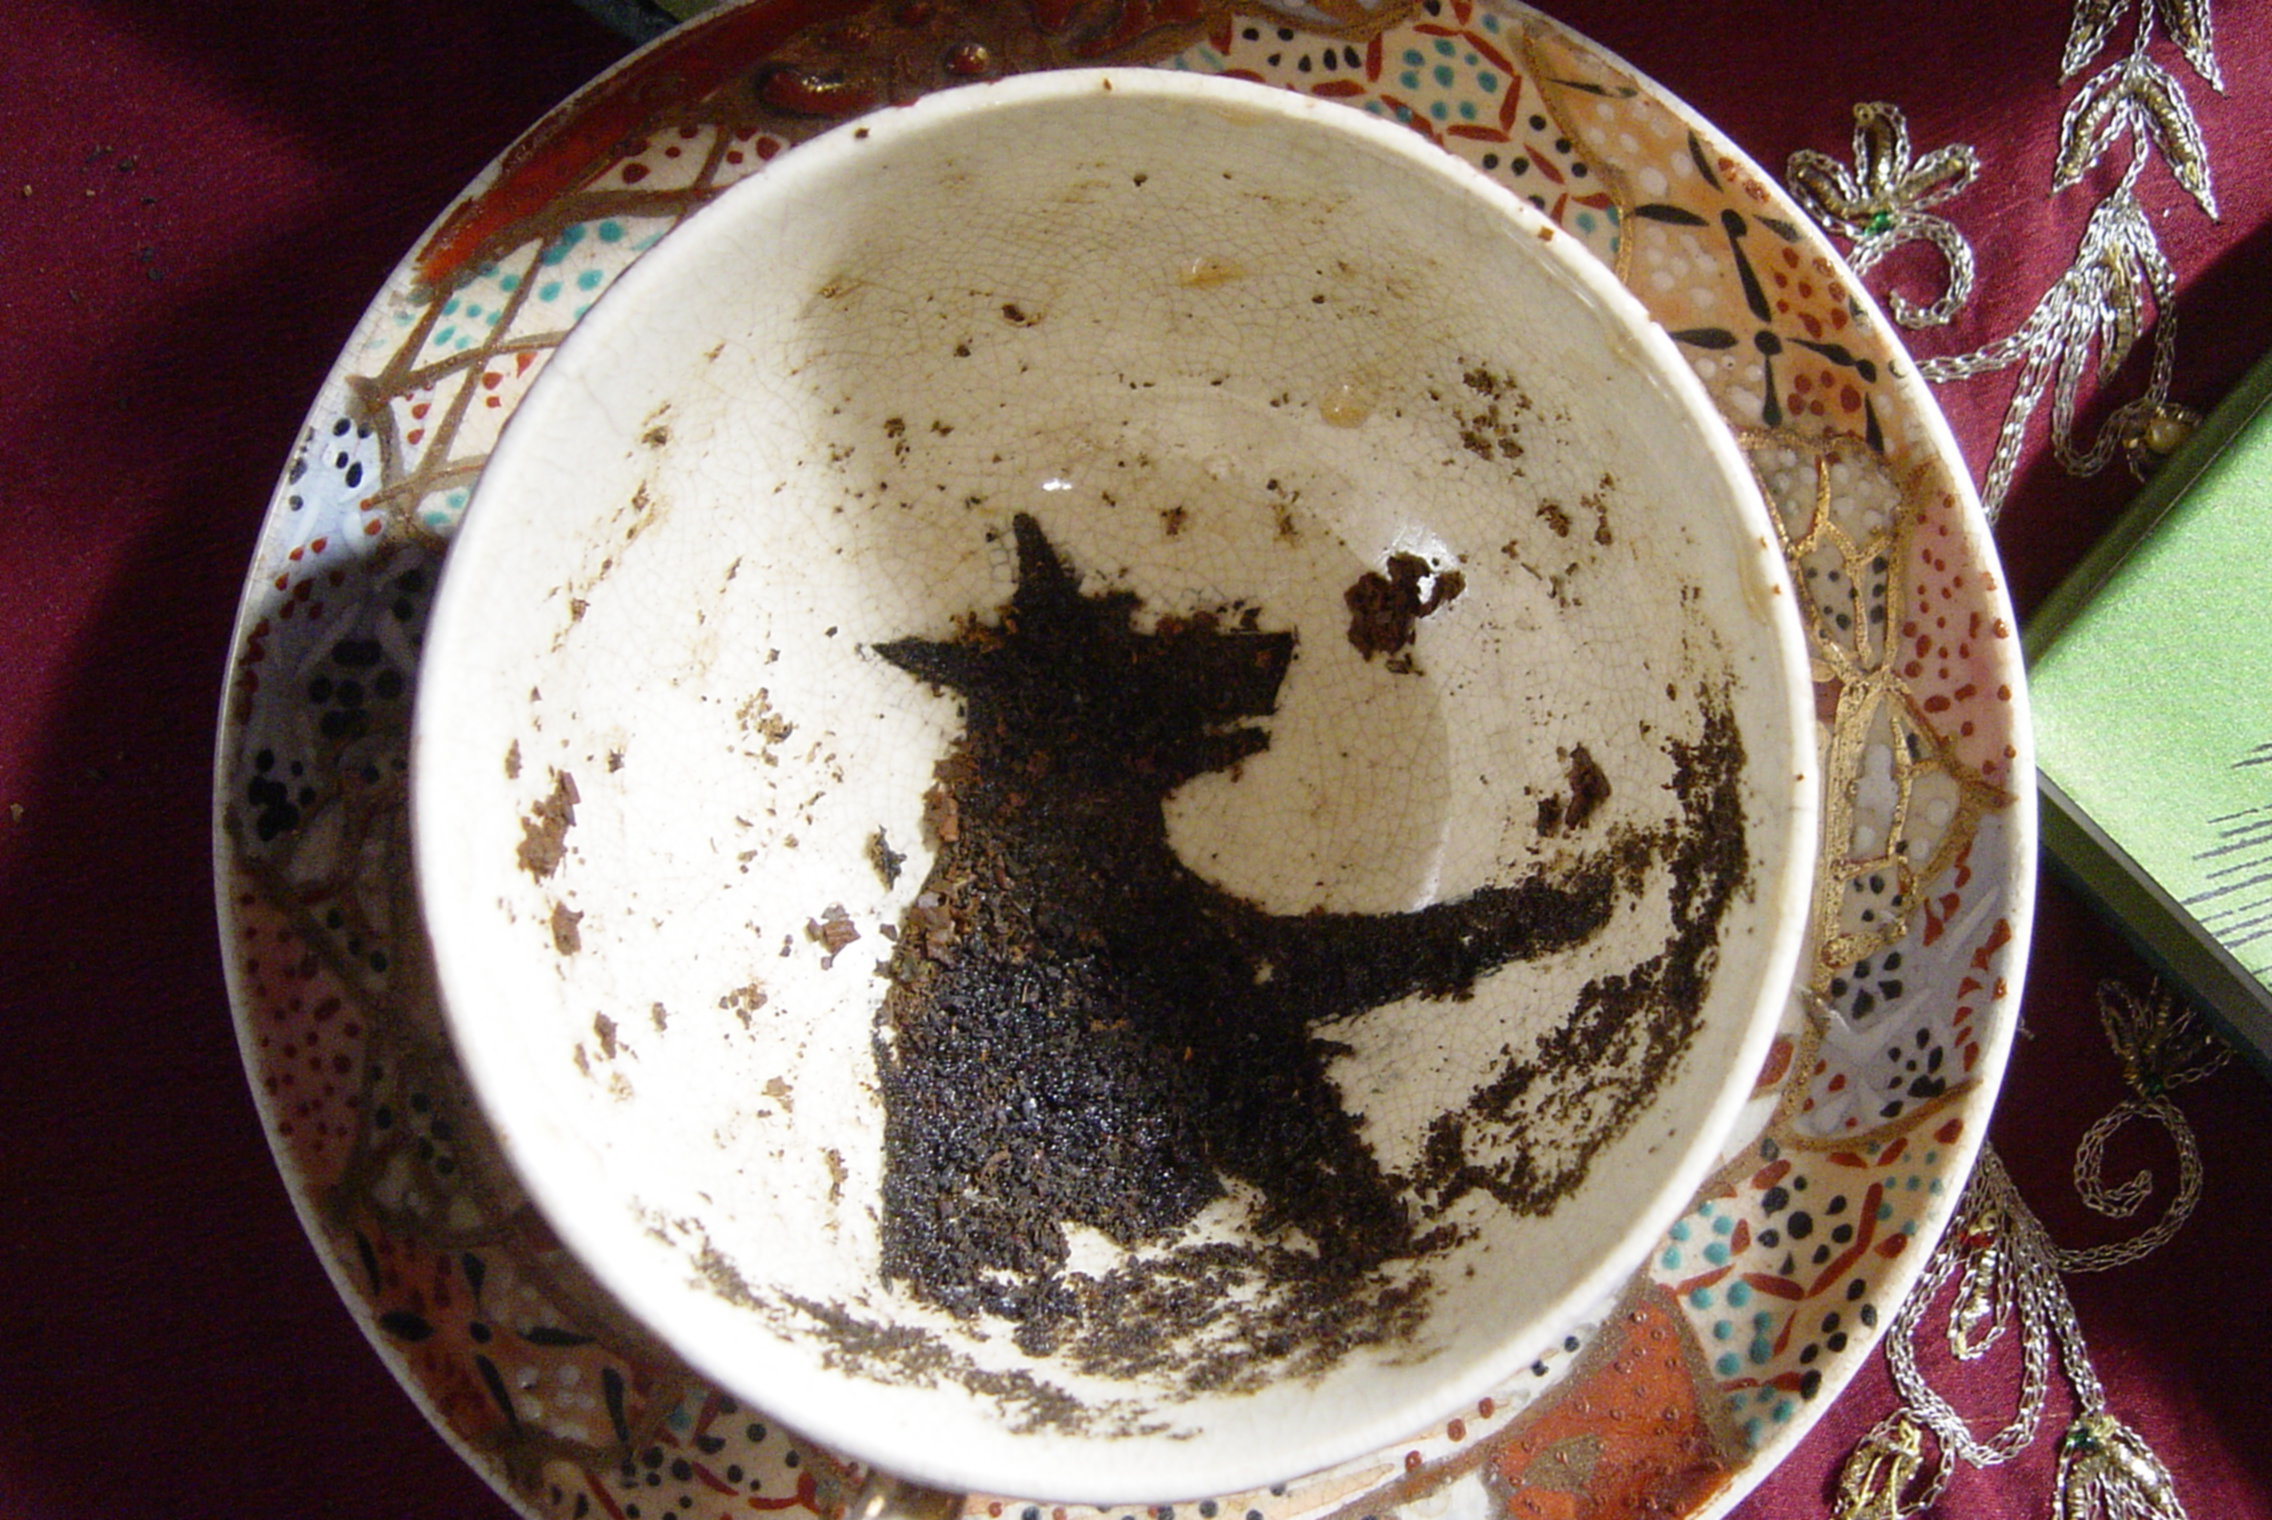 The Grim made of tea leaves in divination